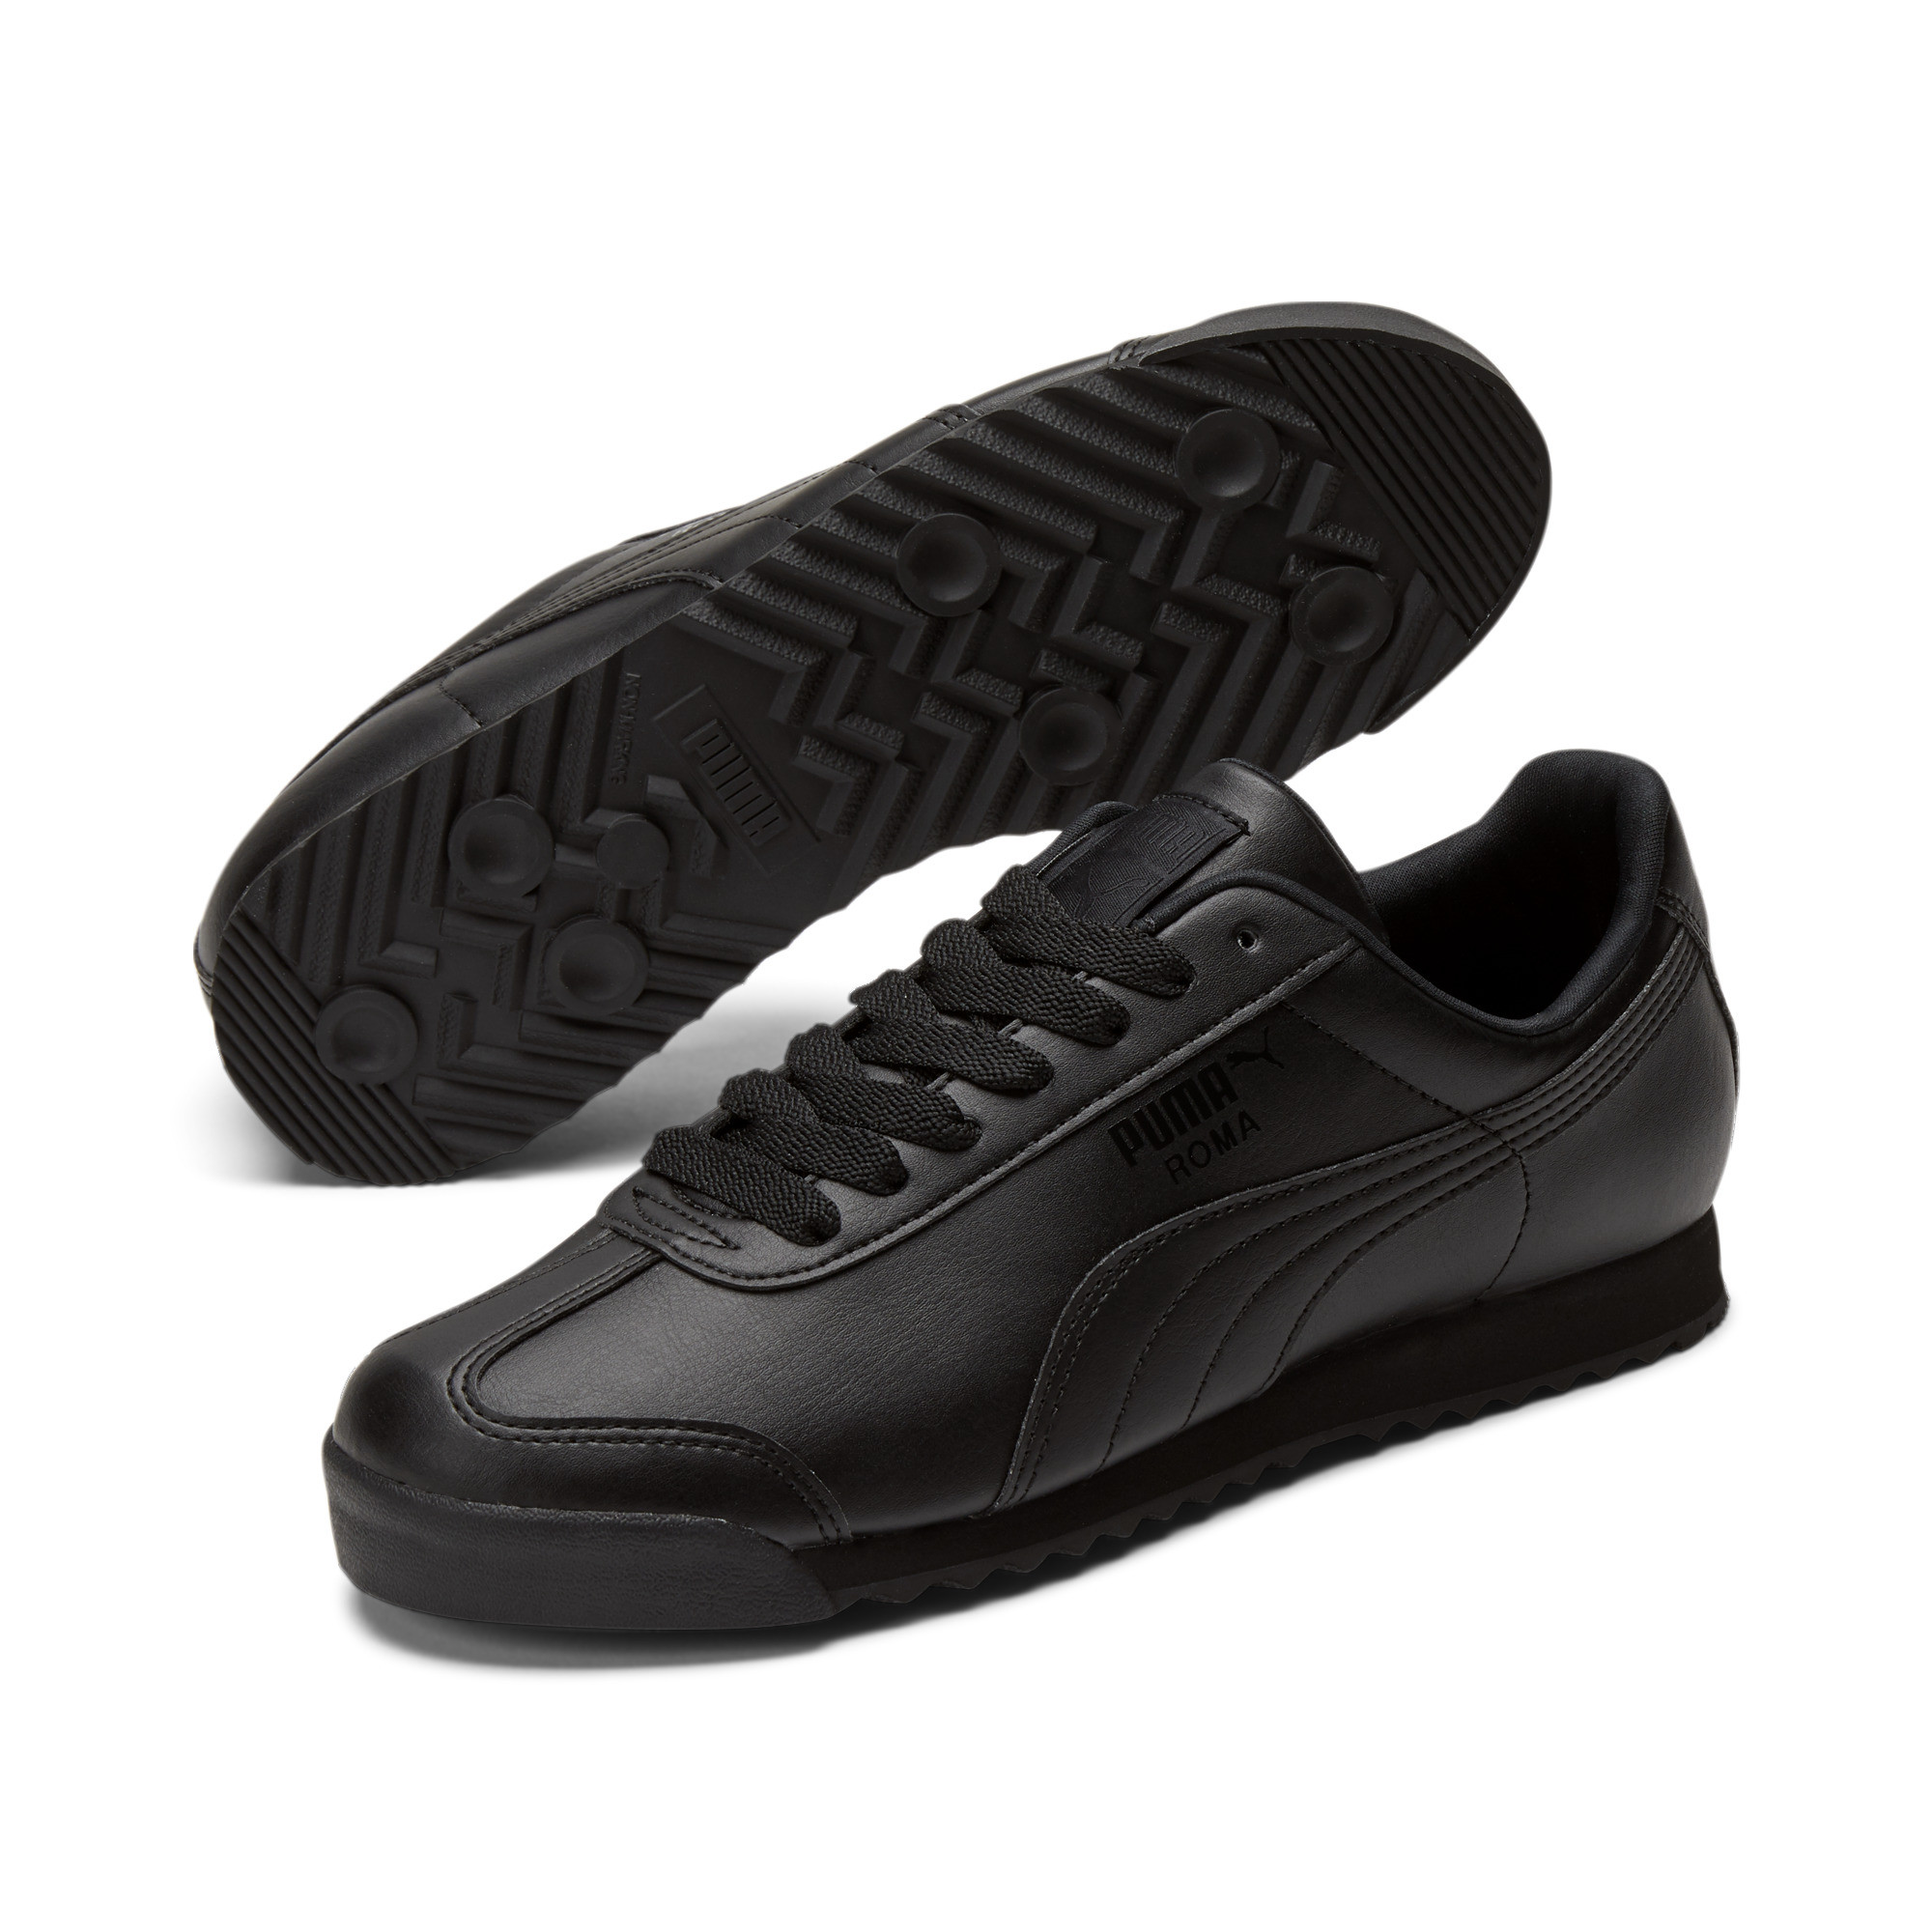 PUMA-Men-039-s-Roma-Basic-Sneakers thumbnail 1